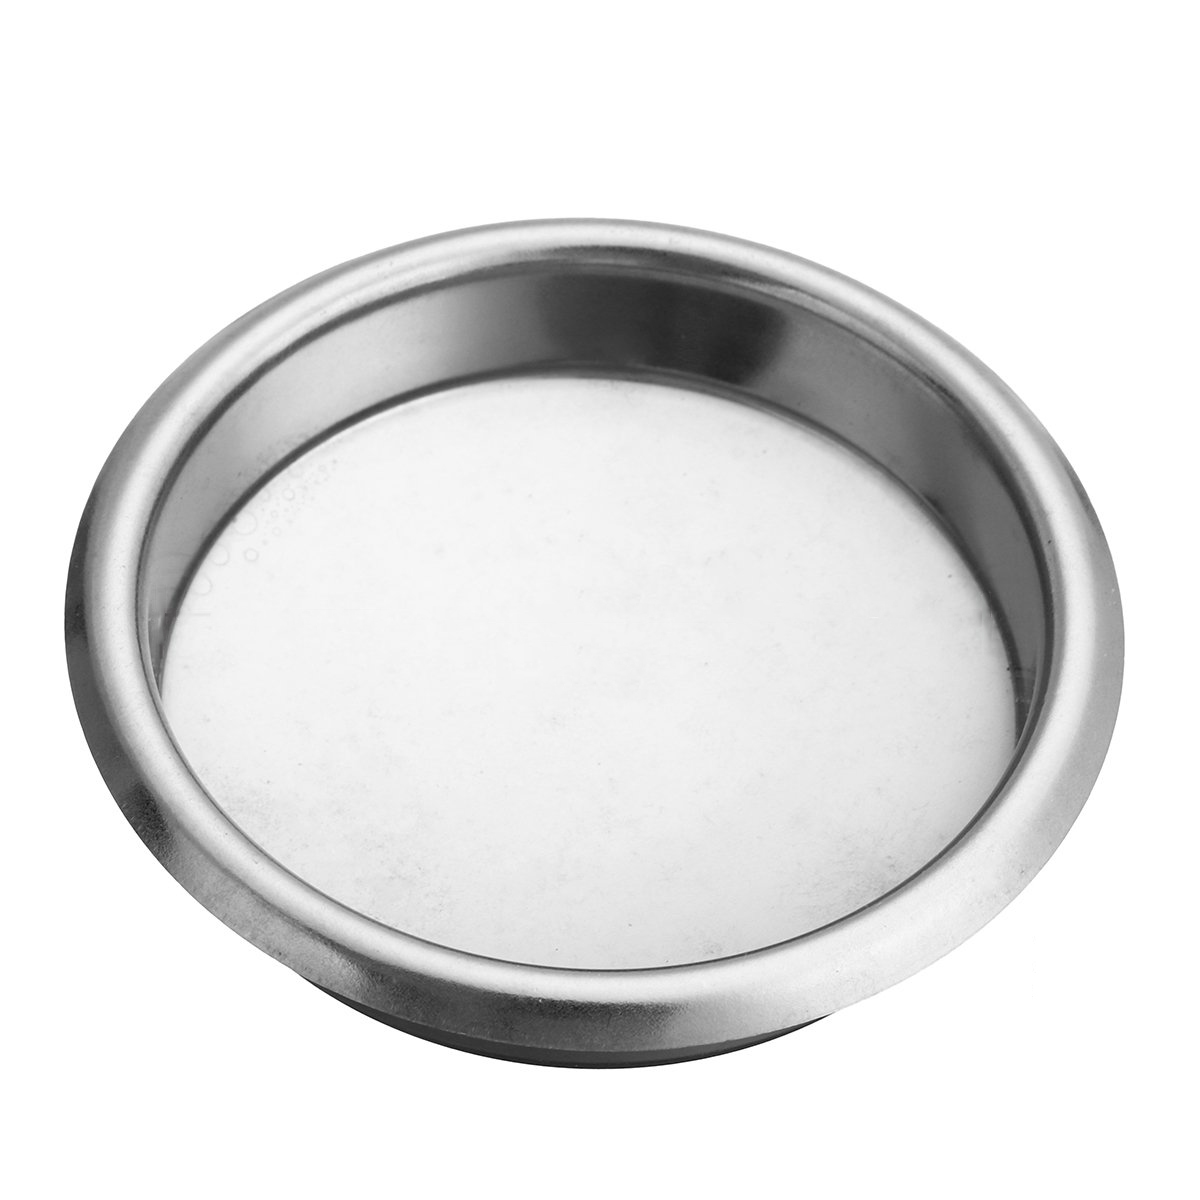 New 58Mm Coffee Machine Blank Filter/Stainless Steel Backwash Cleaning Blind Bowl Coffee Machine Accessories